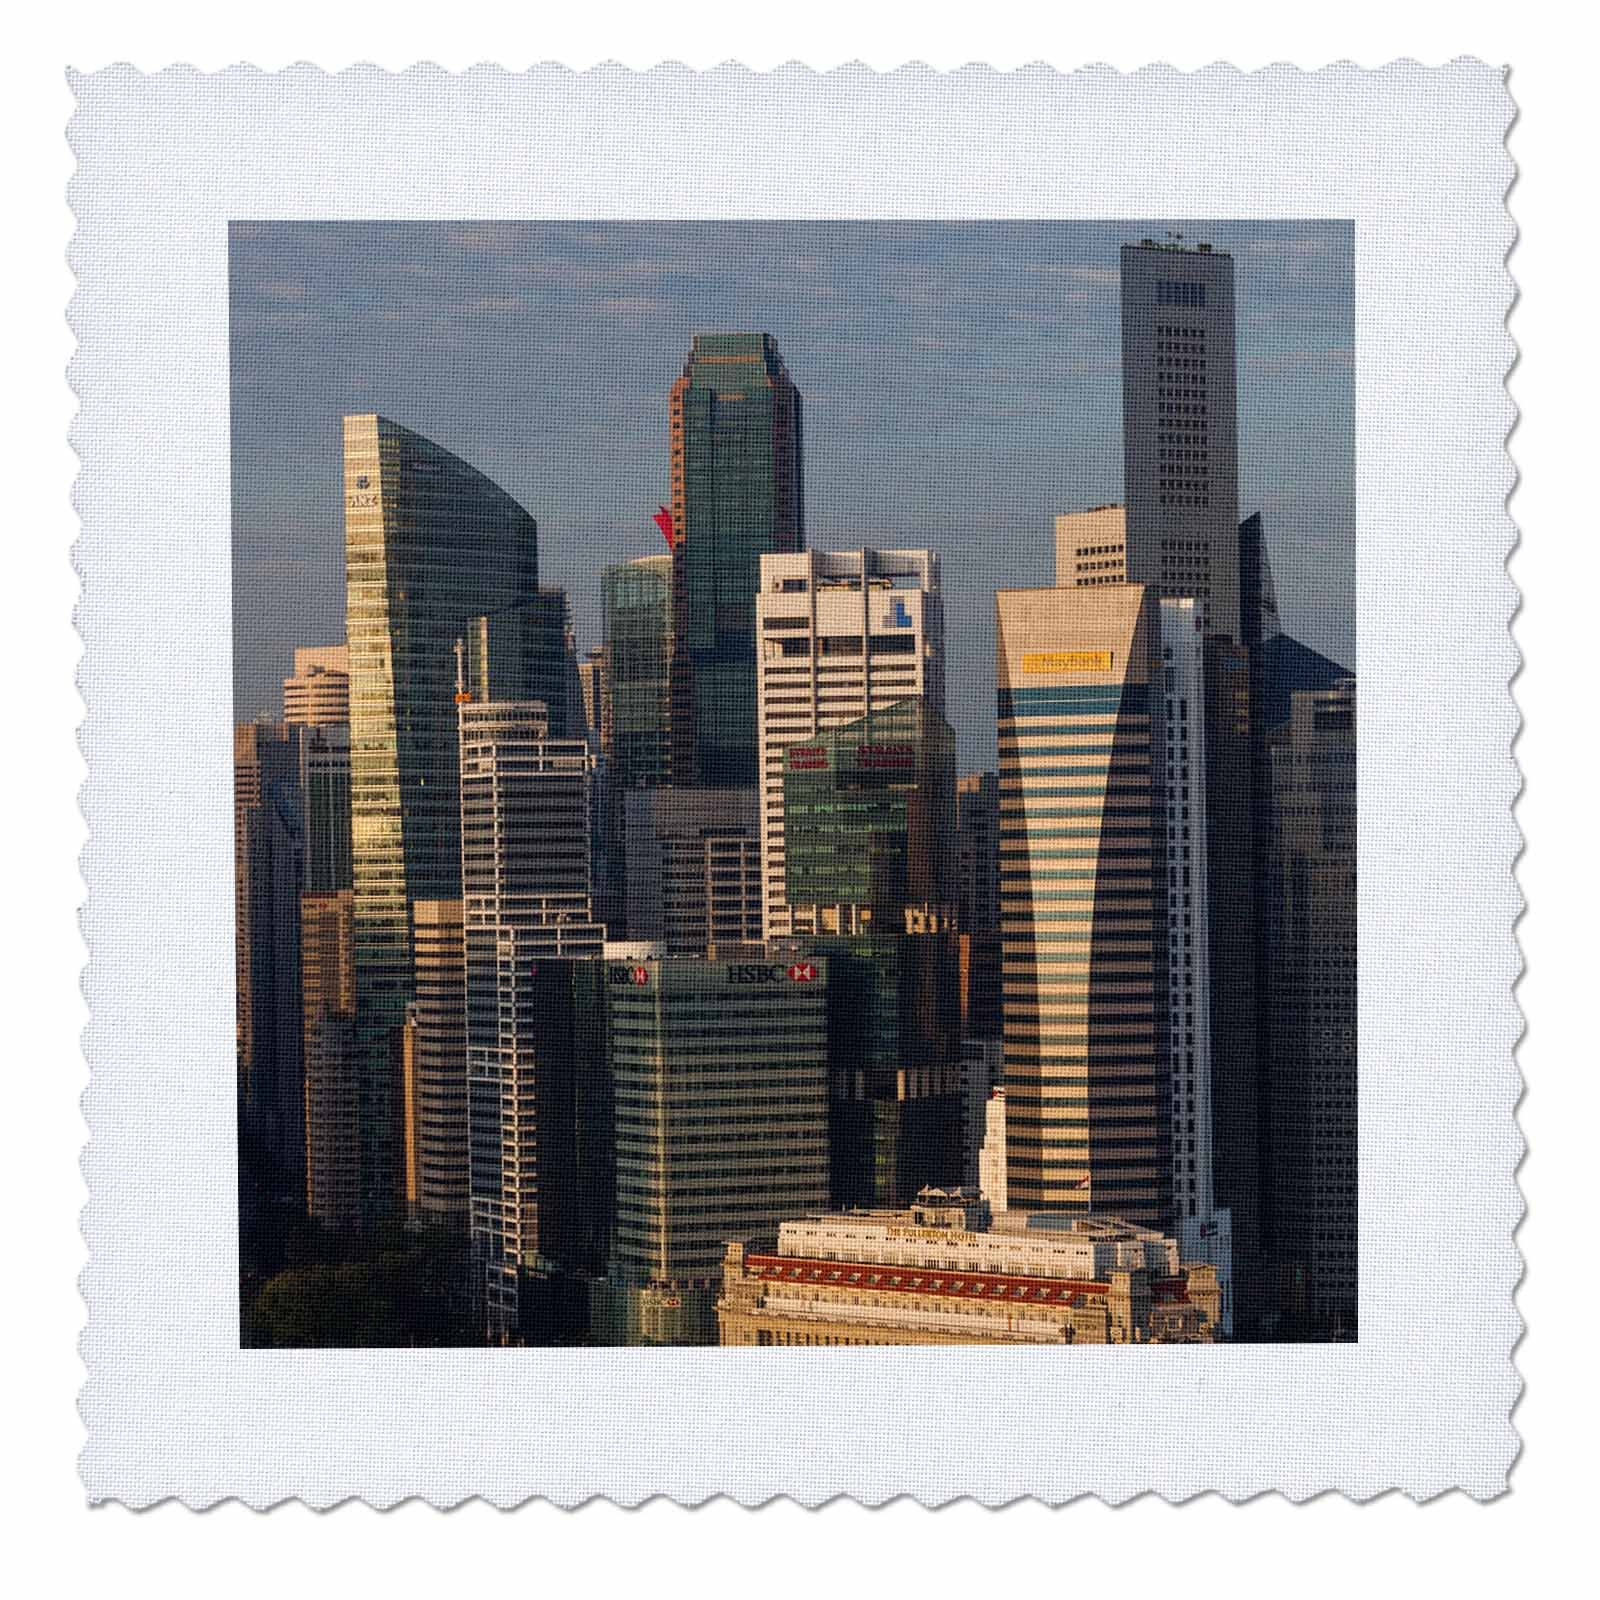 3dRose Danita Delimont - Cities - Singapore, elevated skyline view above Fullerton Hotel, dawn - 16x16 inch quilt square (qs_257279_6)